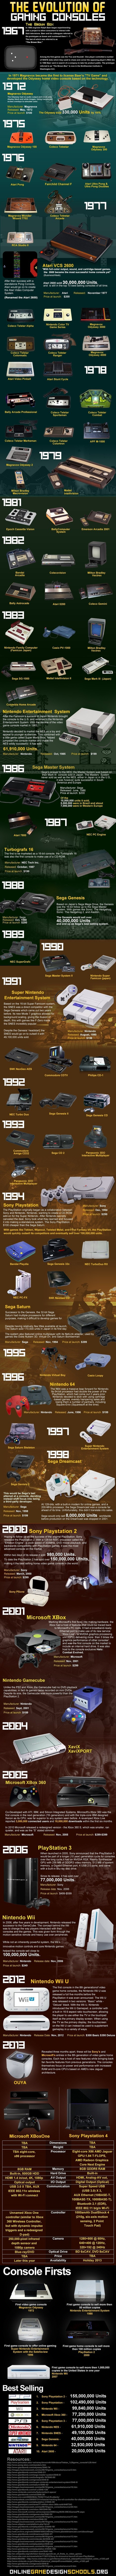 The Evolution Of Gaming Consoles! | Tips And Tricks For Pc, Mobile, Blogging, SEO, Earning online, etc... | Scoop.it